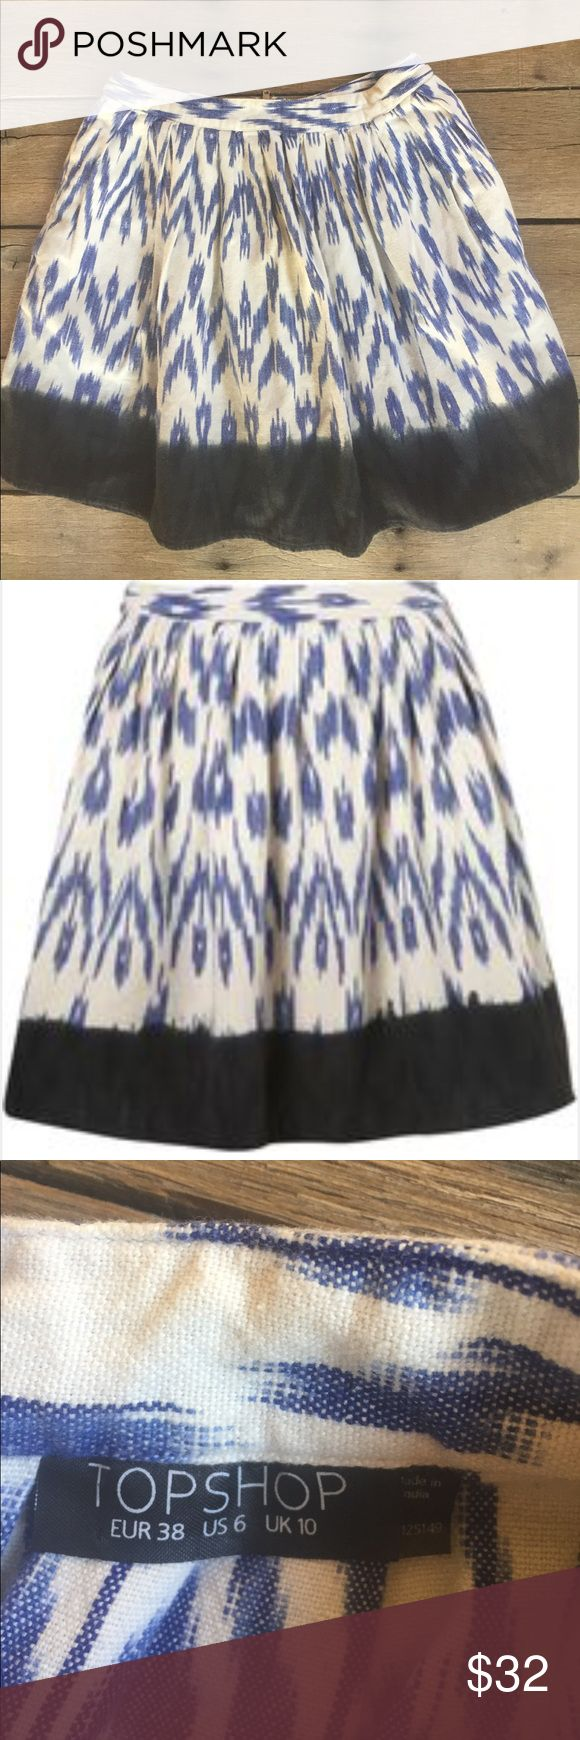 TOPSHOP Aztec Dip Dye Skirt Blue, black and offshore. Measures 16.5 inches waist to hem. Topshop Skirts Mini